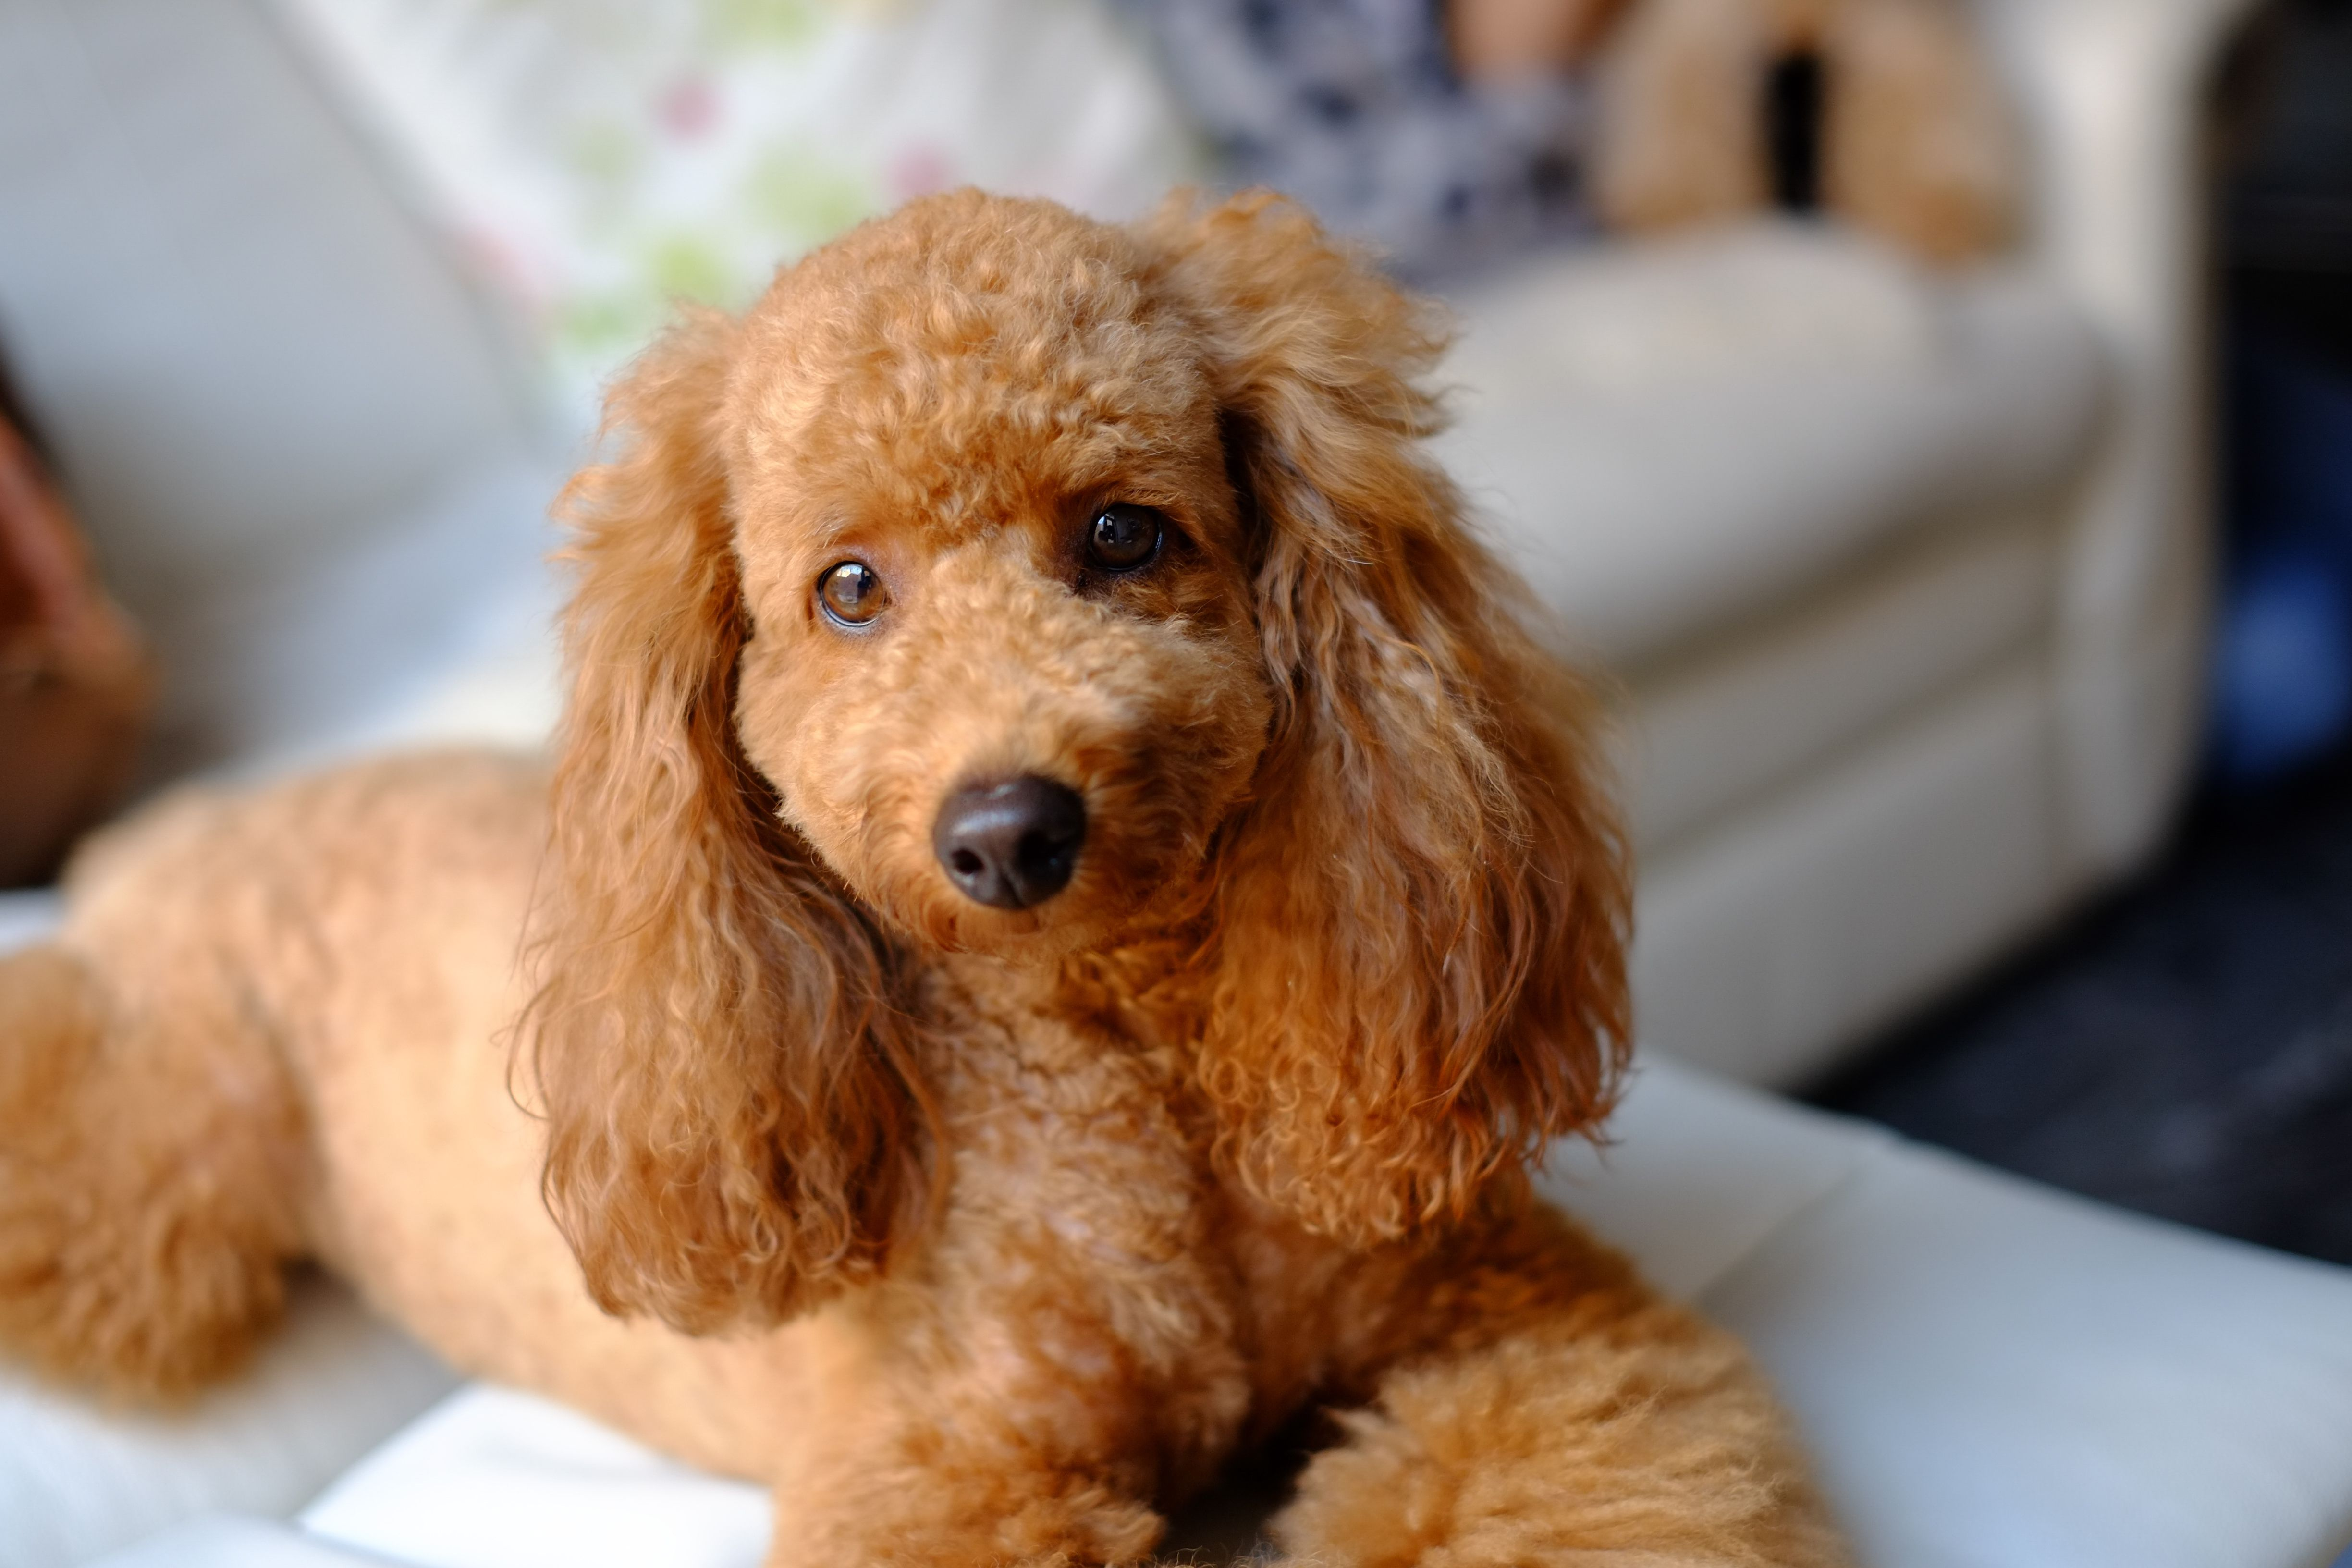 Poodle dogs for apartments